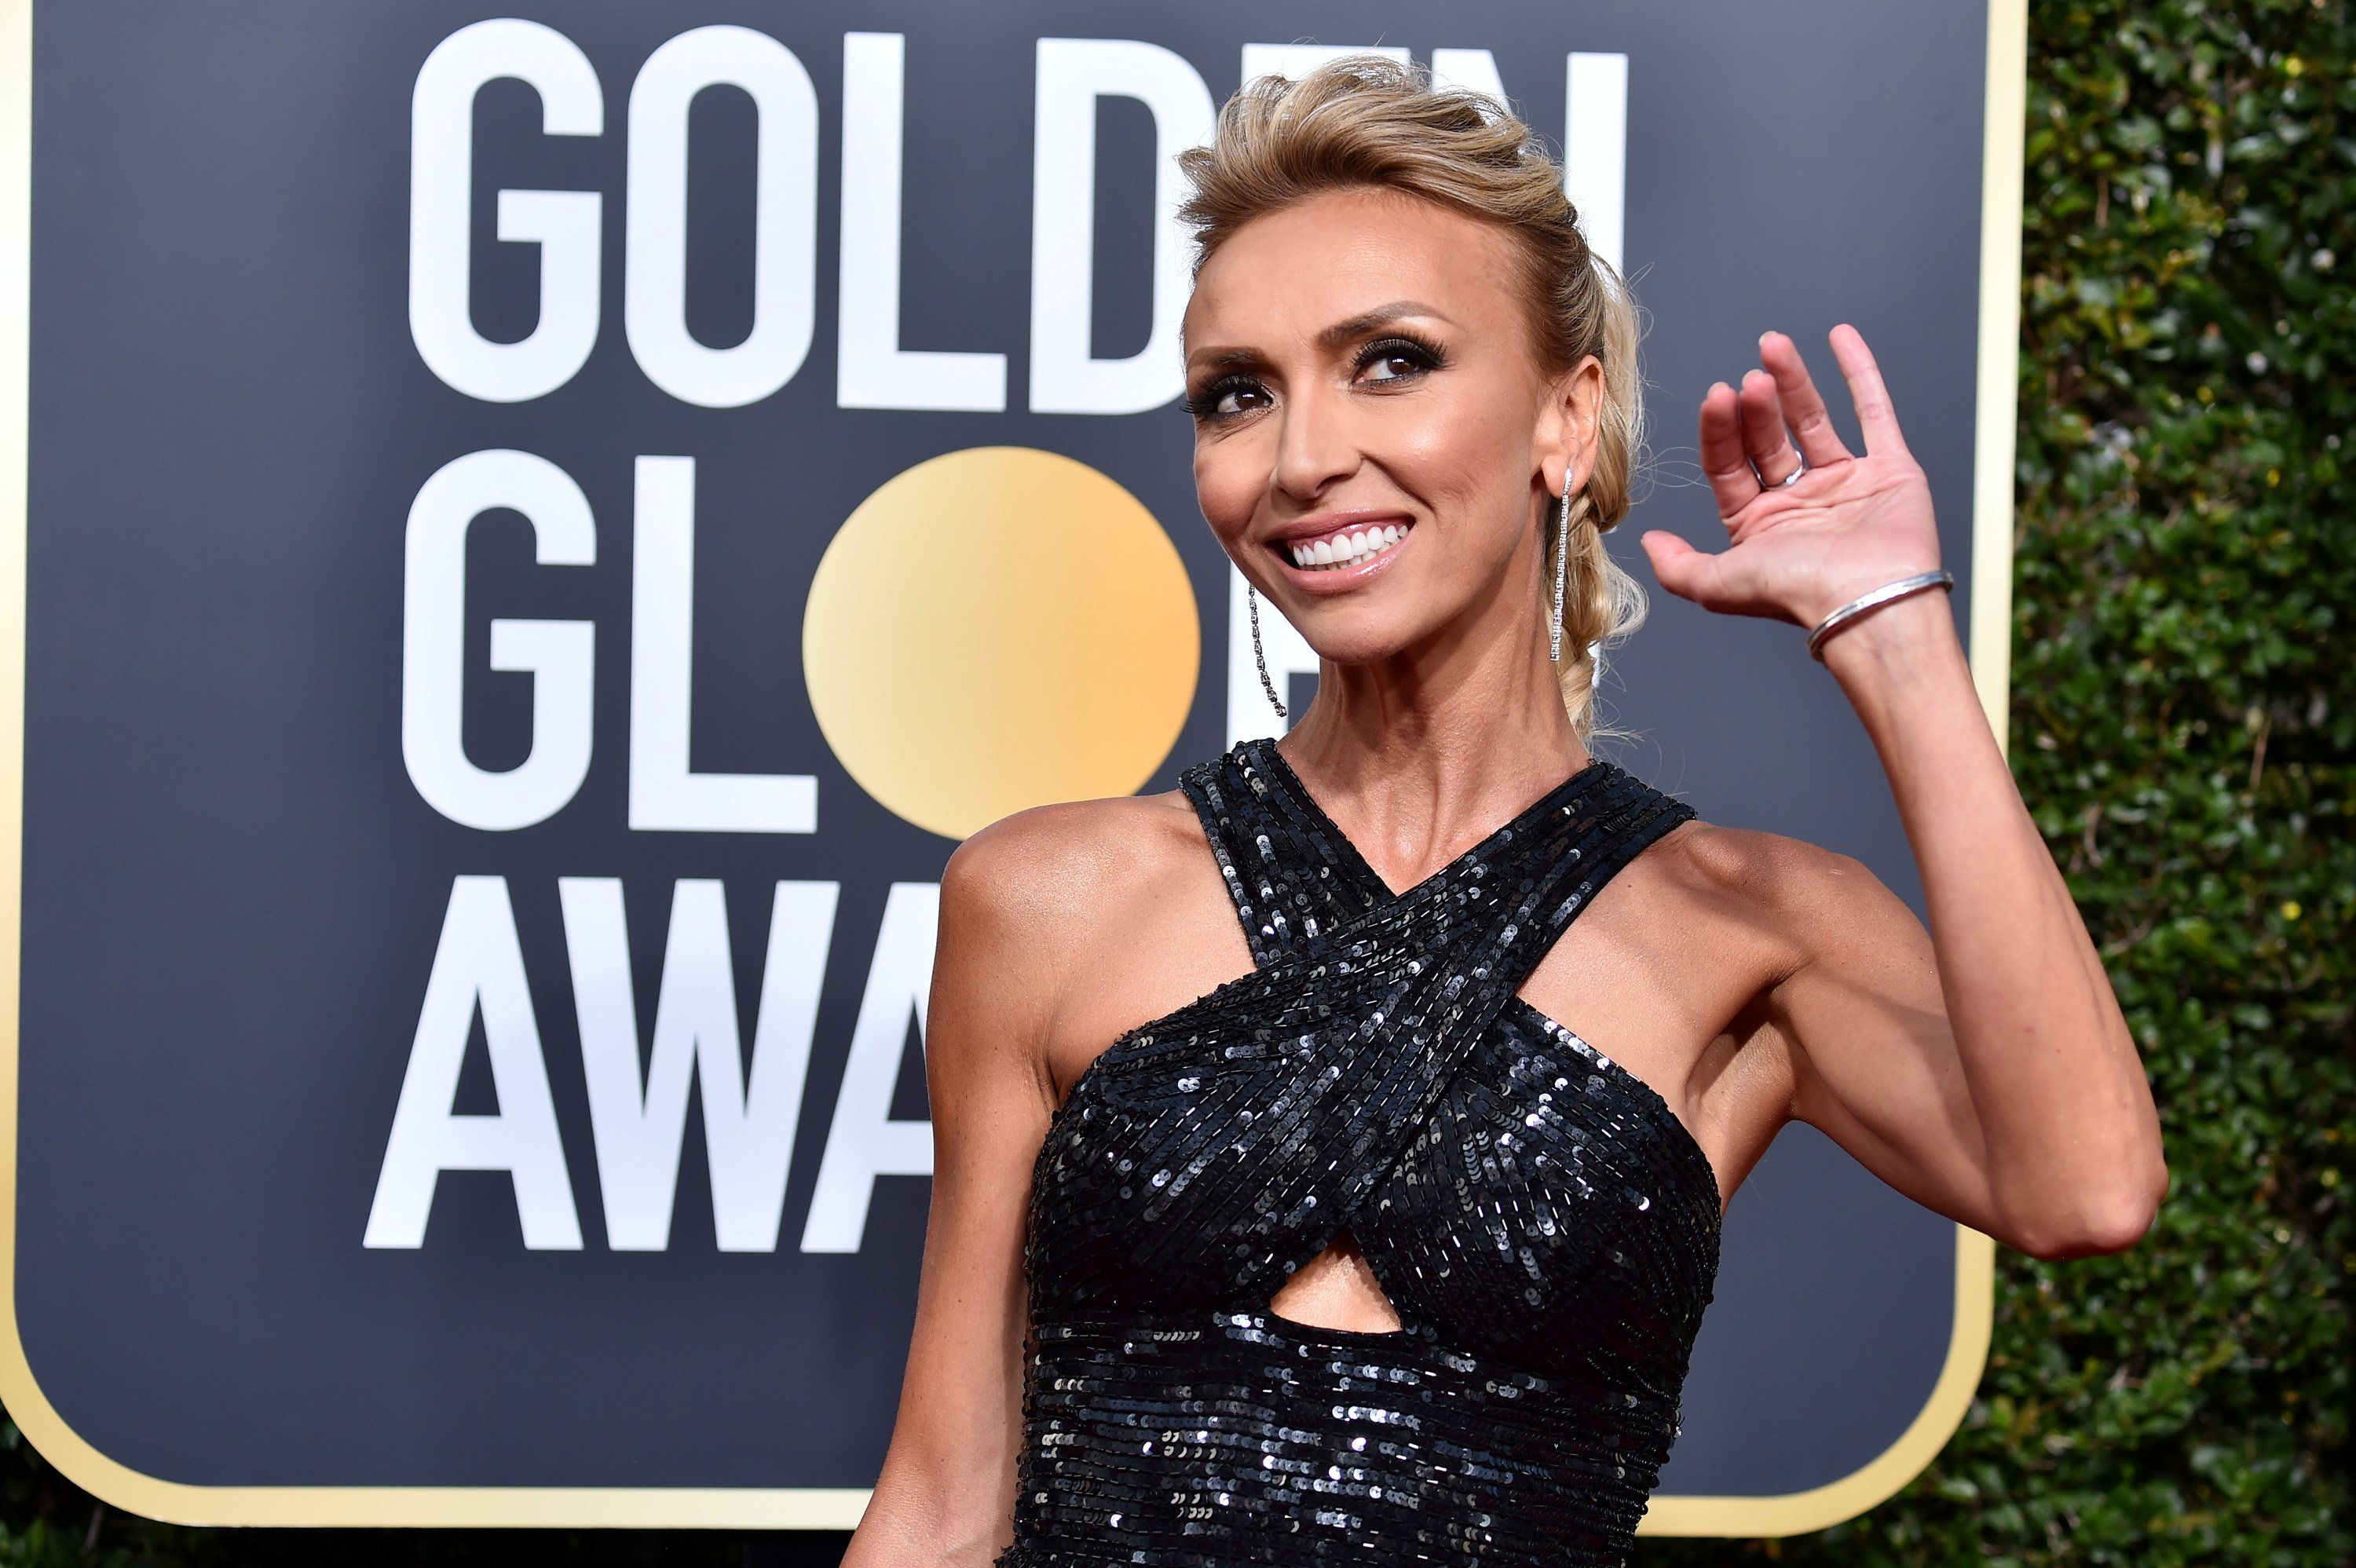 BEVERLY HILLS, CA - JANUARY 07:  Giuliana Rancic  attends The 75th Annual Golden Globe Awards at The Beverly Hilton Hotel on January 7, 2018 in Beverly Hills, California.  (Photo by Frazer Harrison/Getty Images)